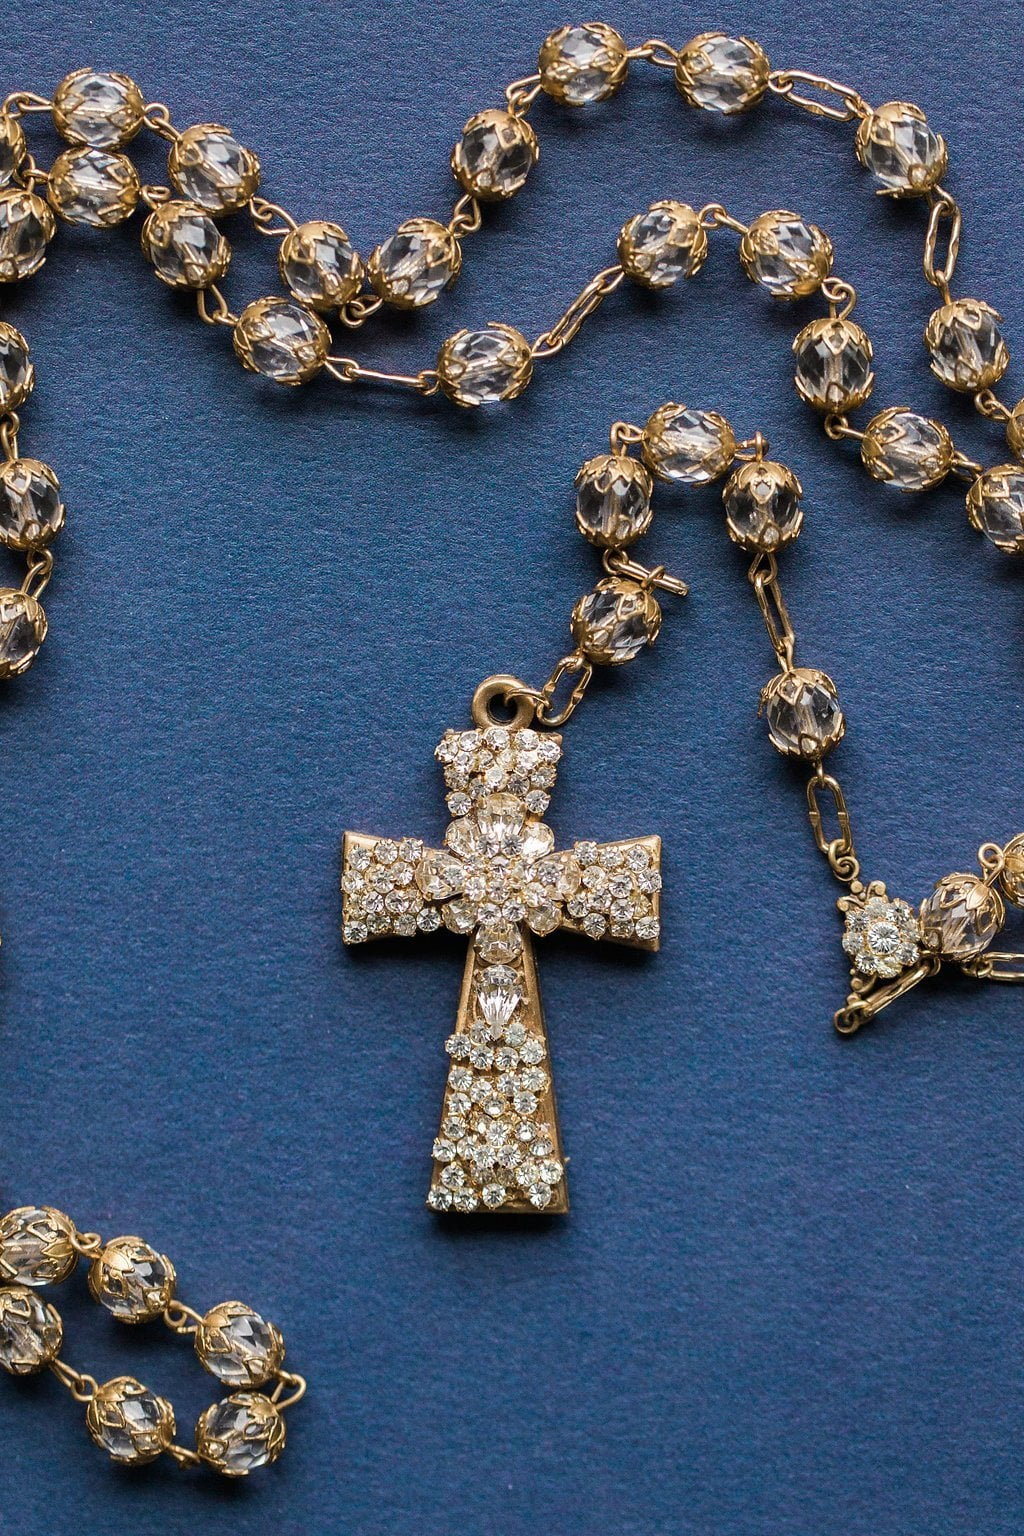 Photograph of gold and diamond rosary cross